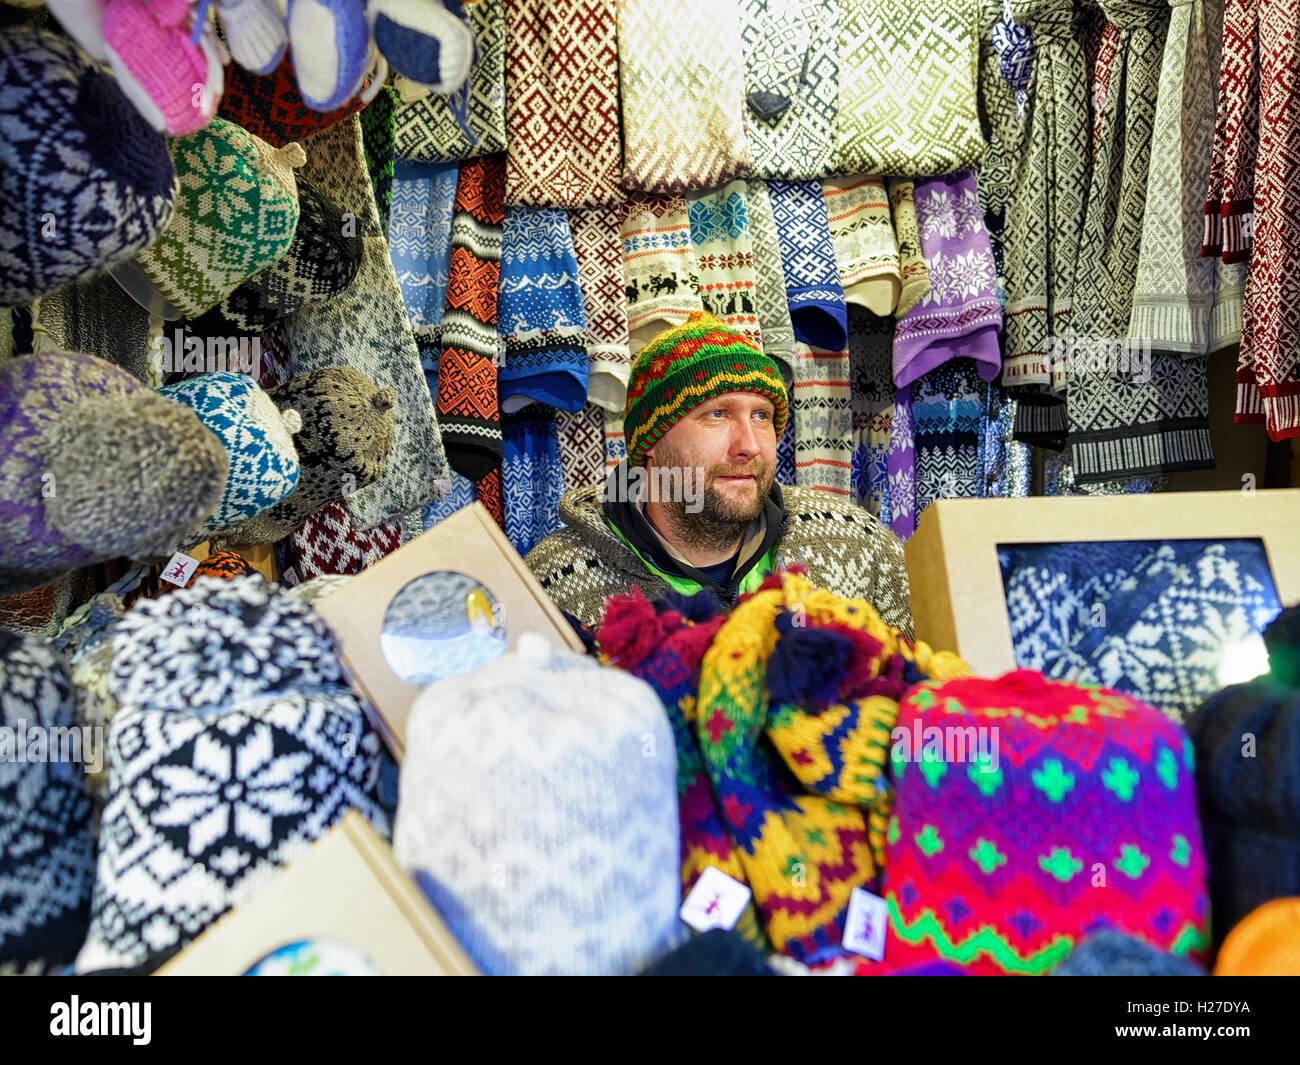 Riga, Latvia - December 25, 2015: Festively dressed man selling woolen clothes at Riga Christmas Market. Warm mittens, - Stock Image